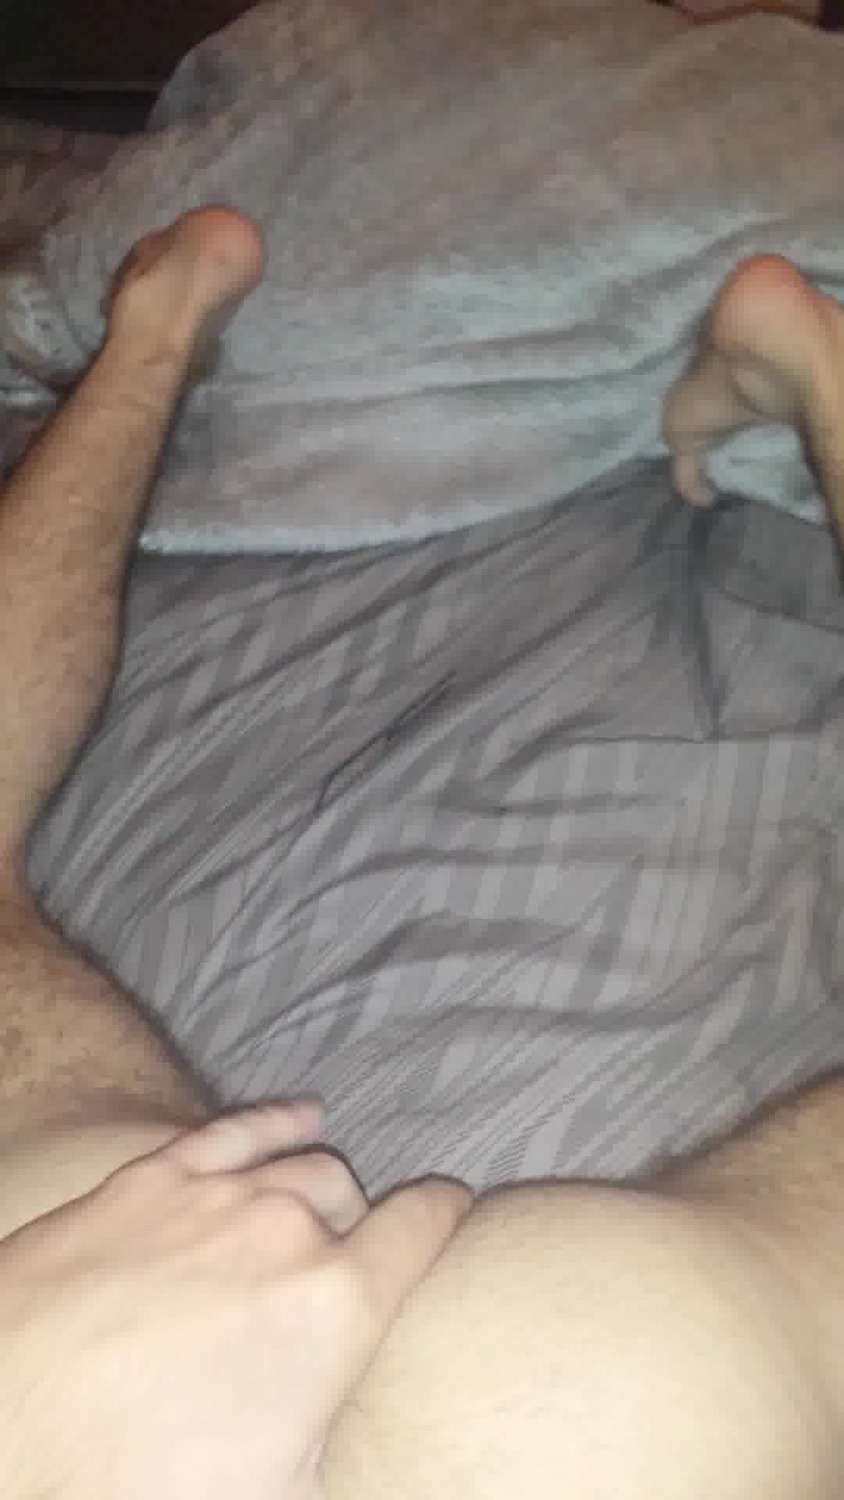 18 year old twink sucking my dick